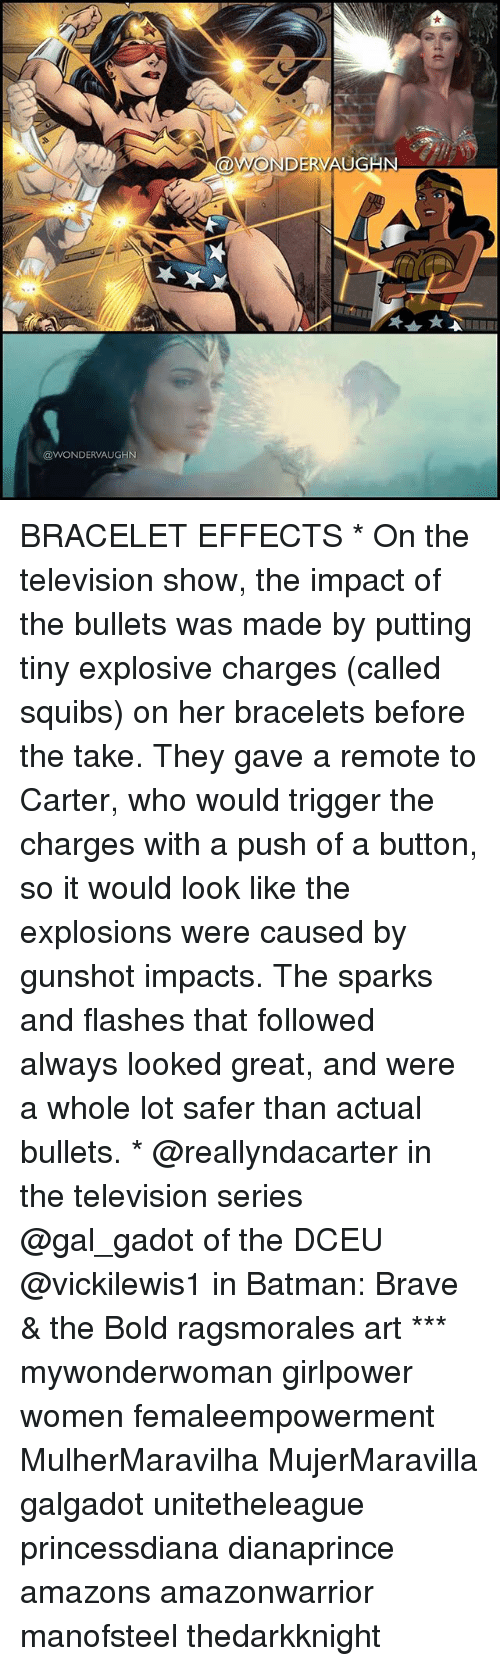 Triggere: DE  @WONDERVAUGHN BRACELET EFFECTS * On the television show, the impact of the bullets was made by putting tiny explosive charges (called squibs) on her bracelets before the take. They gave a remote to Carter, who would trigger the charges with a push of a button, so it would look like the explosions were caused by gunshot impacts. The sparks and flashes that followed always looked great, and were a whole lot safer than actual bullets. * @reallyndacarter in the television series @gal_gadot of the DCEU @vickilewis1 in Batman: Brave & the Bold ragsmorales art *** mywonderwoman girlpower women femaleempowerment MulherMaravilha MujerMaravilla galgadot unitetheleague princessdiana dianaprince amazons amazonwarrior manofsteel thedarkknight